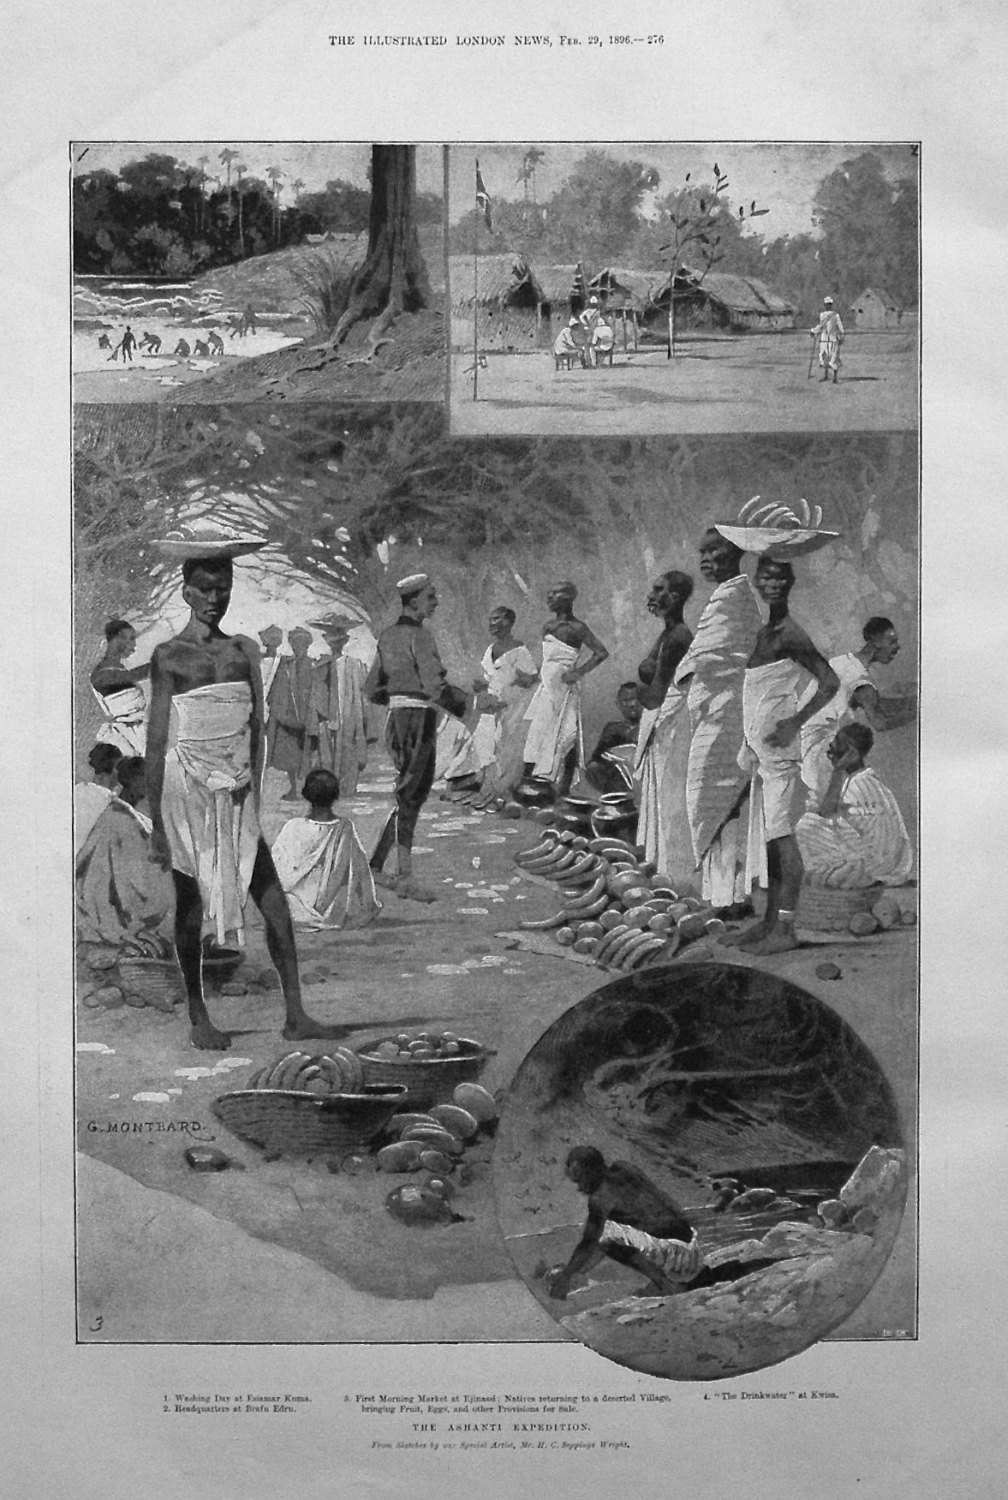 The Ashanti Expedition. 1896